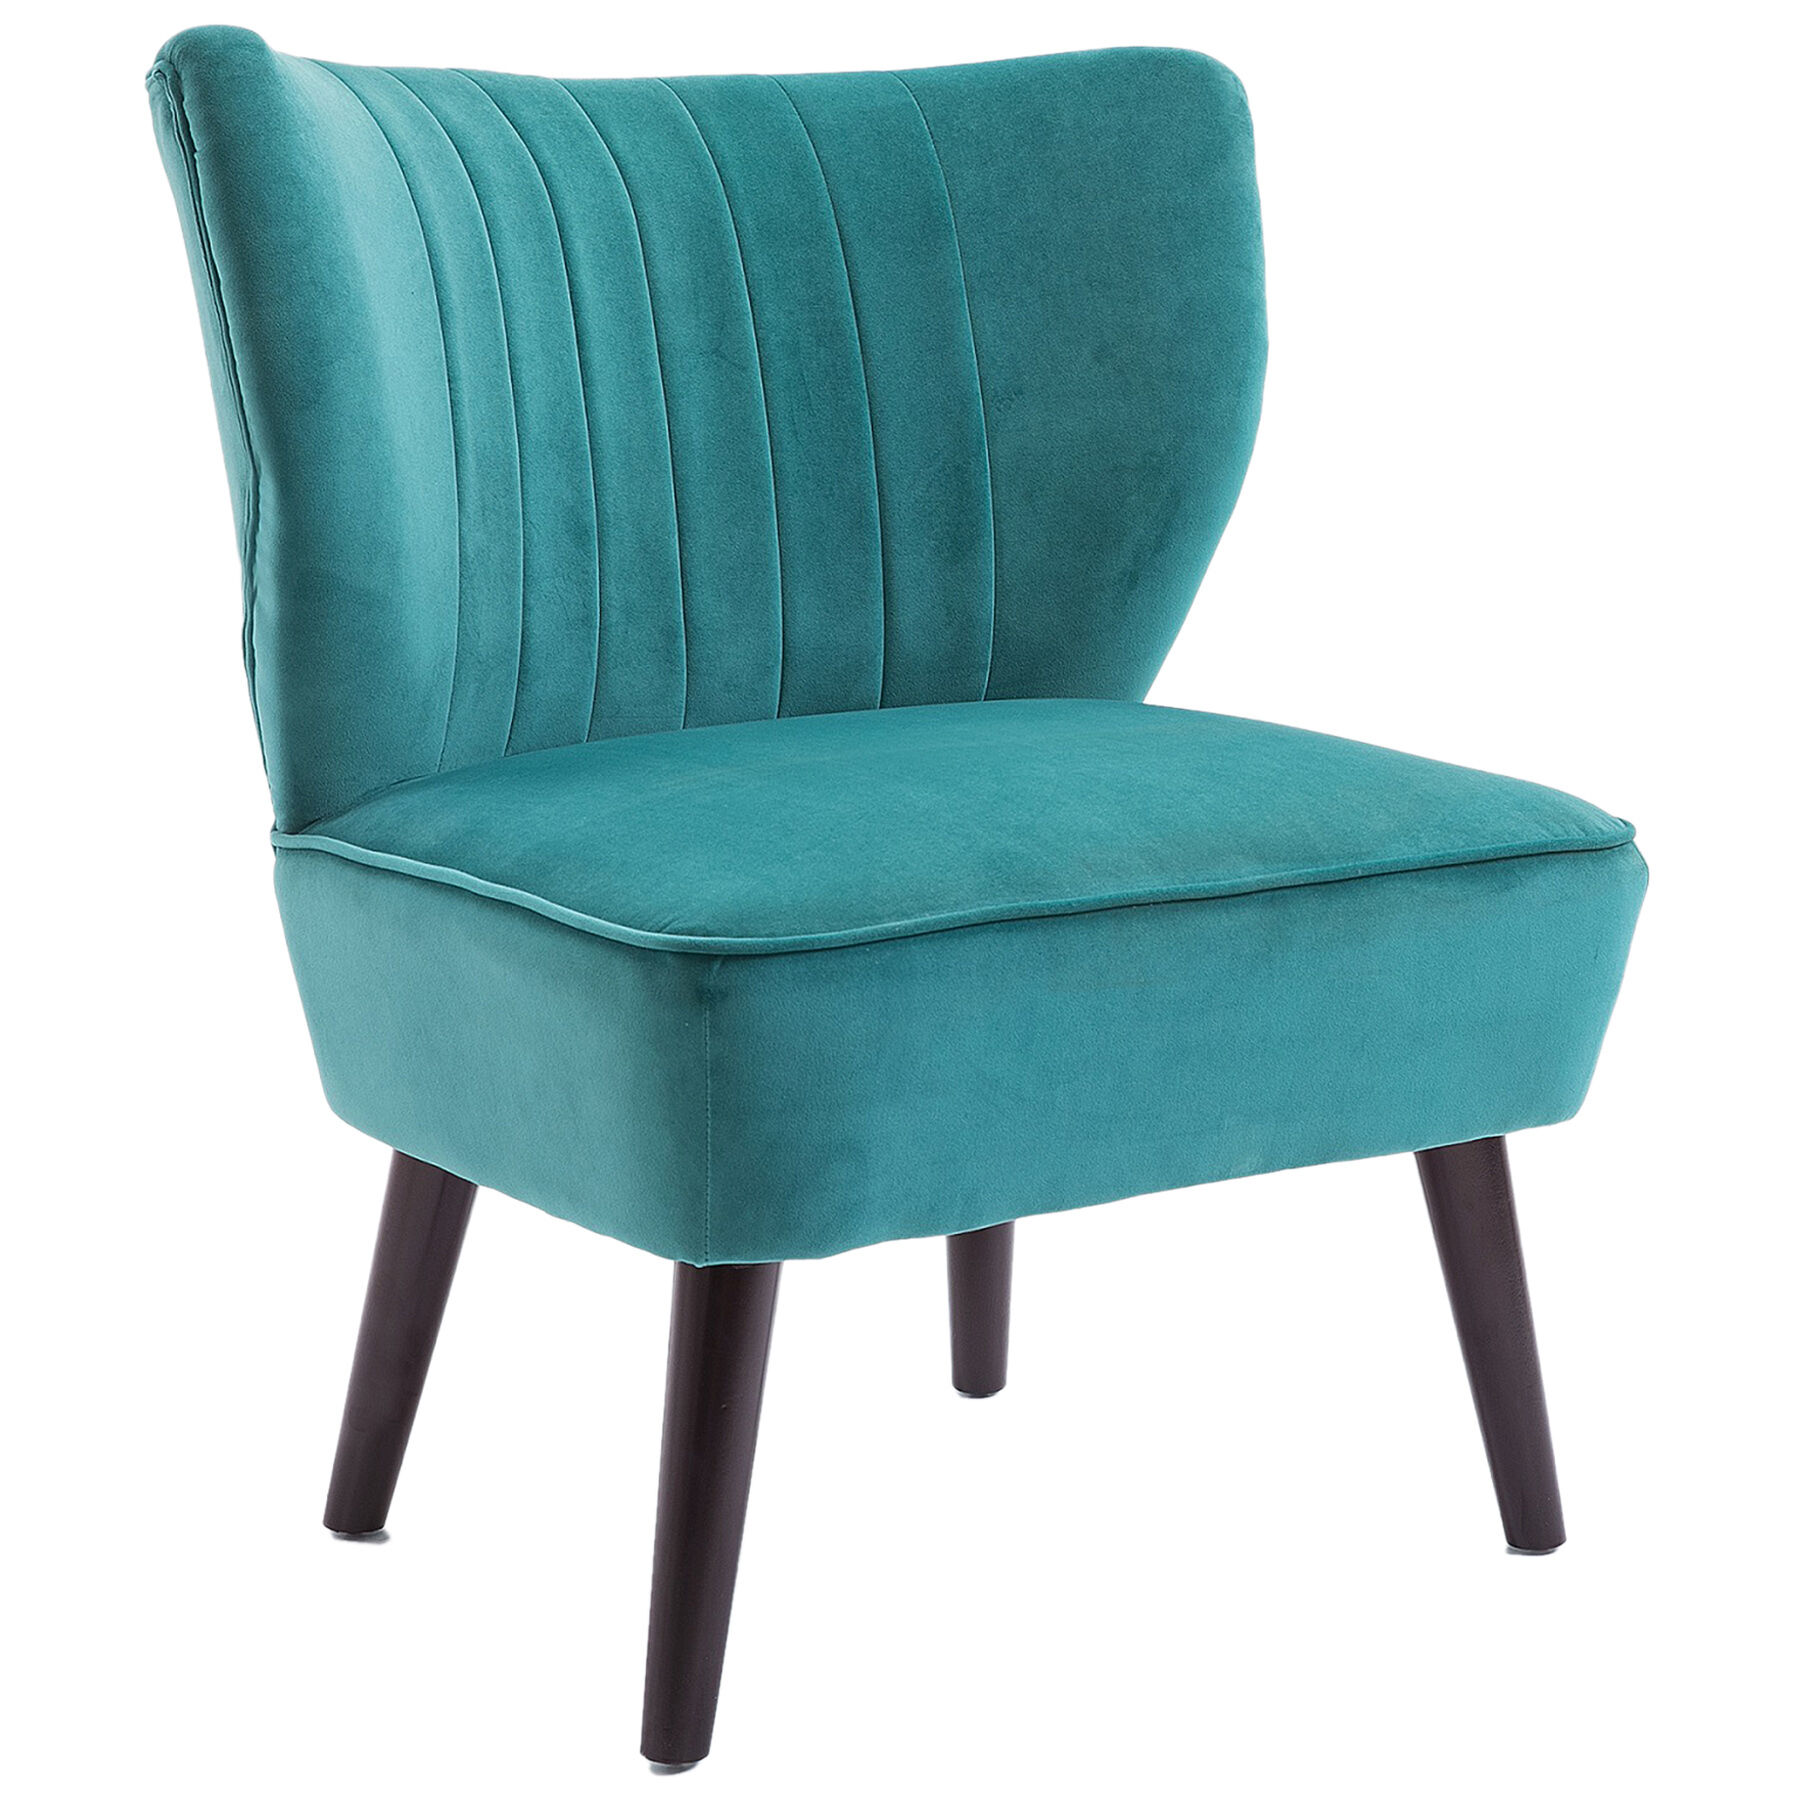 Dahlia 3 Seat Leather Sofa Carrie Chair Green At Home